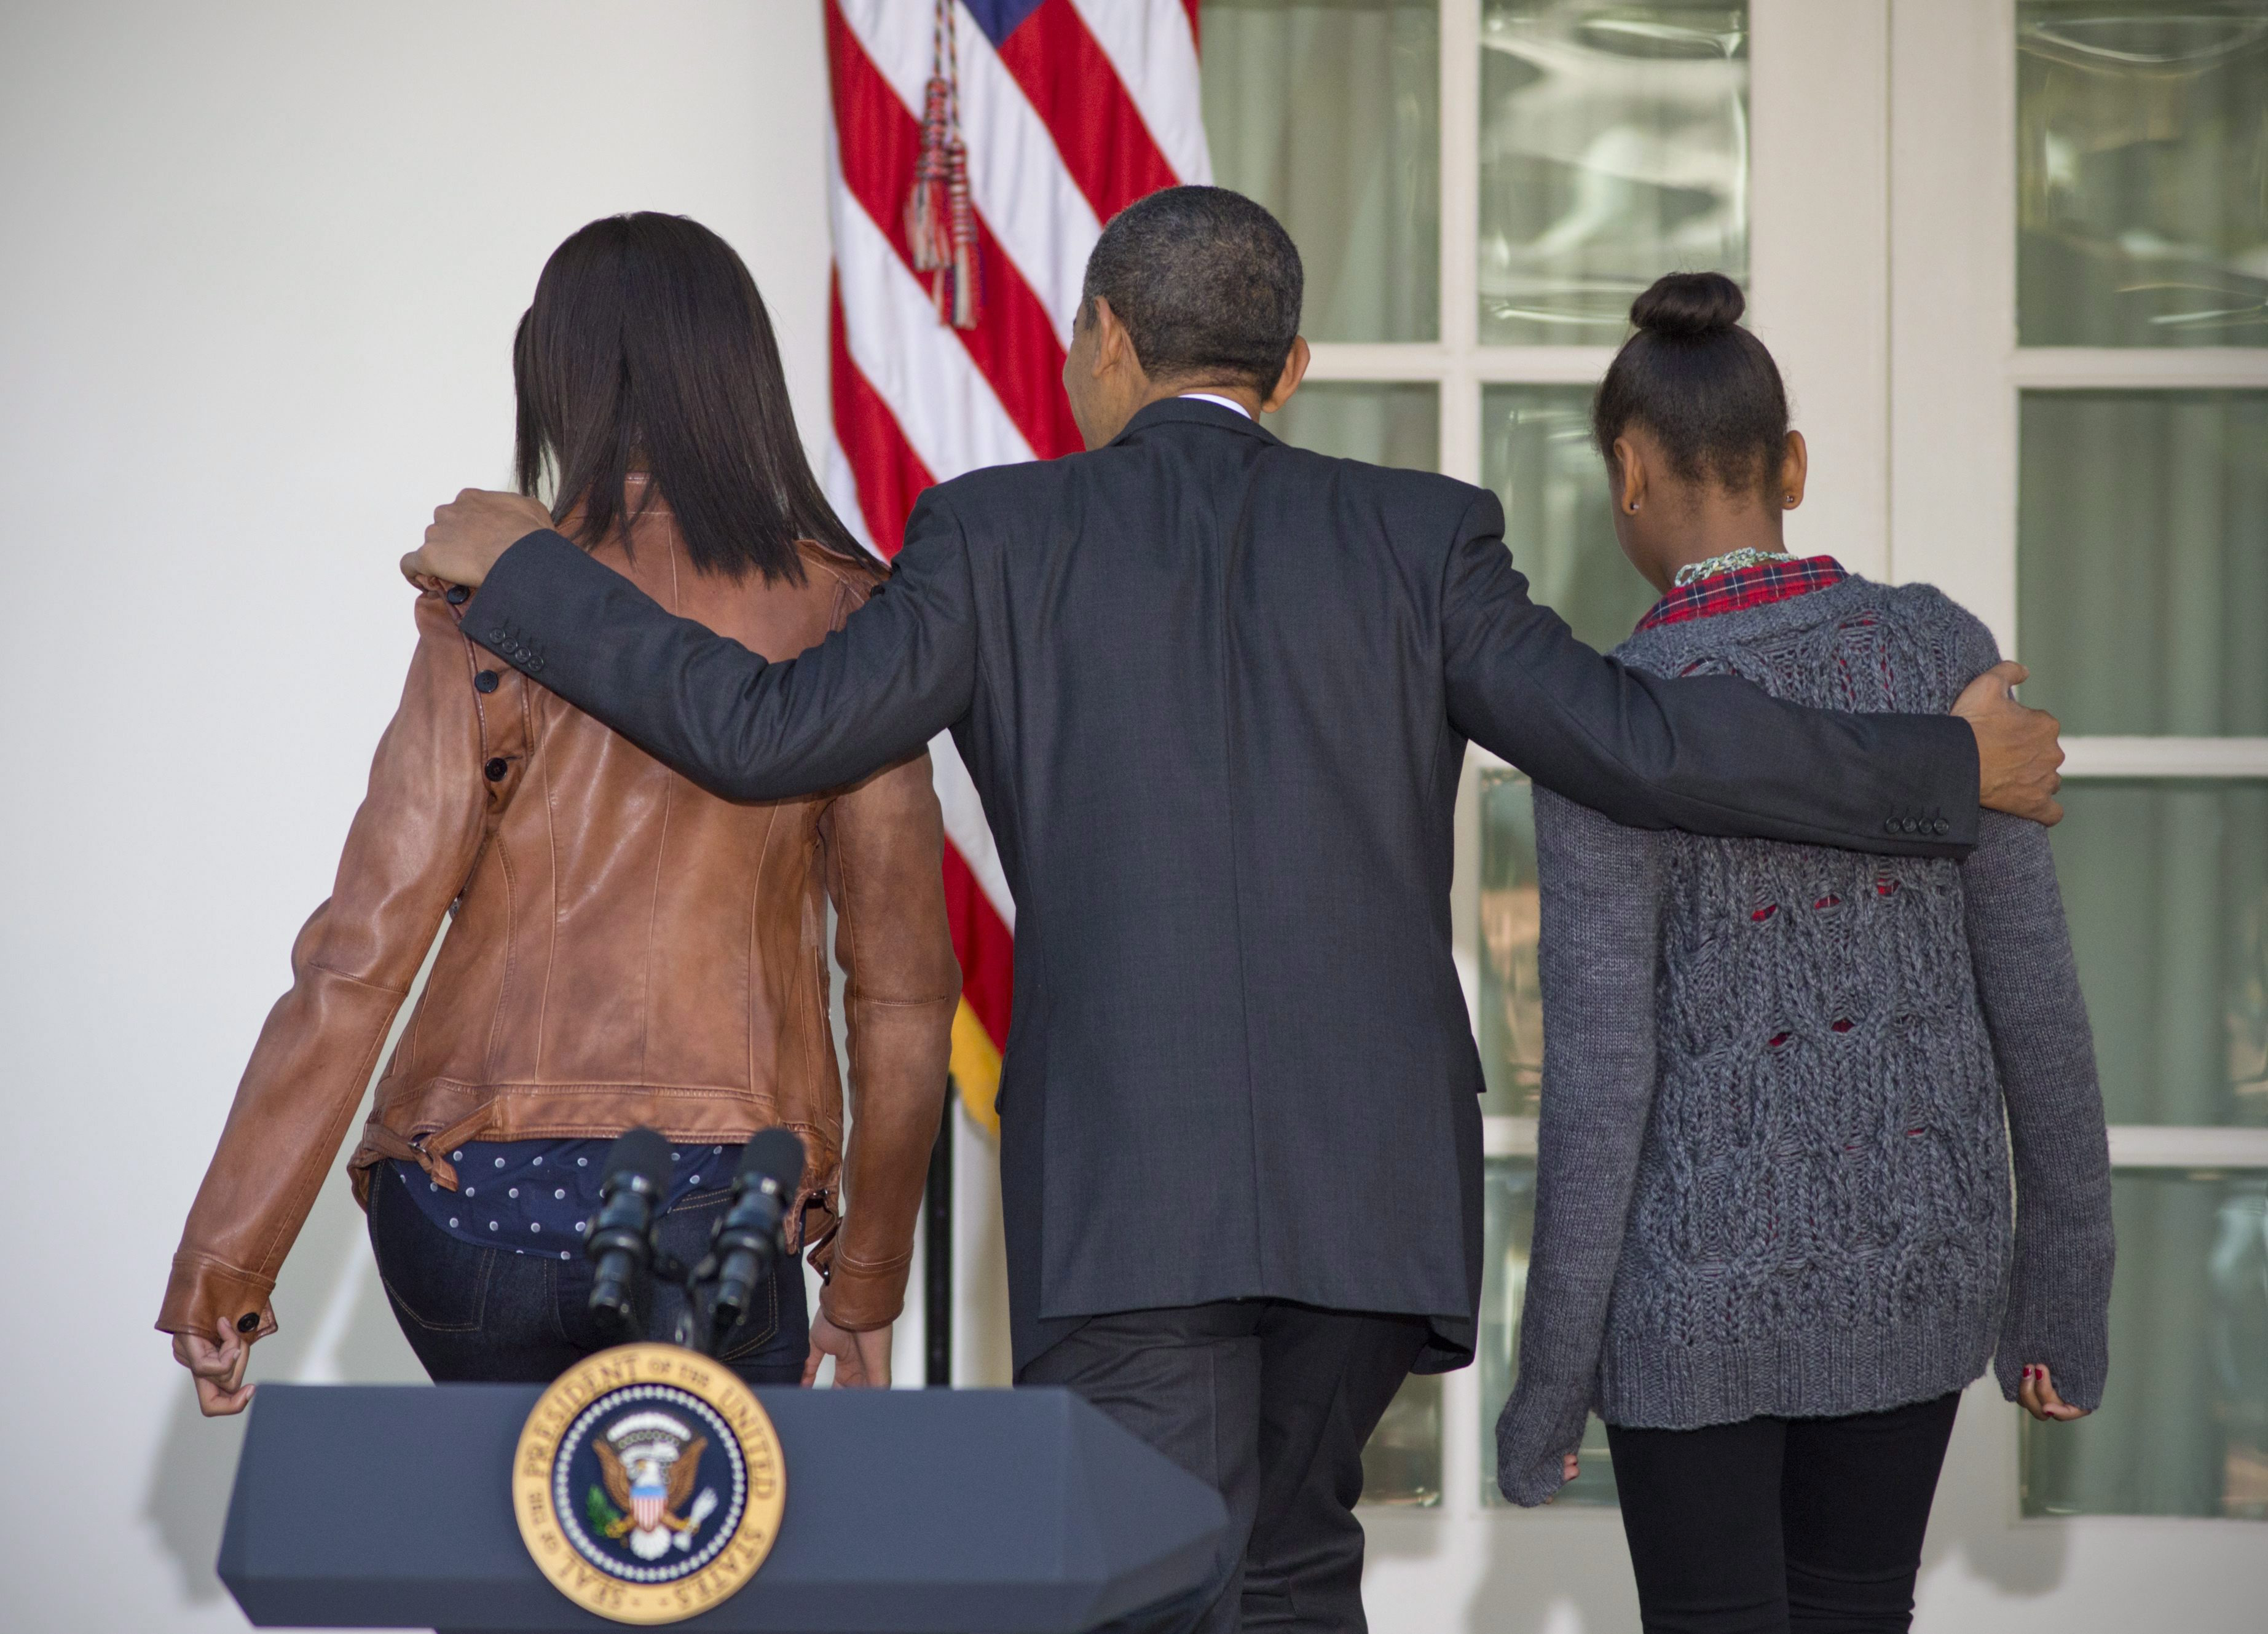 """FILE - In this Nov. 21, 2012 file photo, President Barack Obama walks with daughters Sasha, right, and Malia, left, to the Oval Office of the White House in Washington, Wednesday, Nov. 21, 2012, after a ceremony giving a """"presidential pardon,"""" to a turkey in the Rose Garden. President Barack Obama's daughter Malia was just 10 and longing for a promised puppy when her family moved into the White House. She's marked some of life's milestones in the past seven years, and another one comes Friday: graduation from high school.(AP Photo/J. Scott Applewhite, File)"""